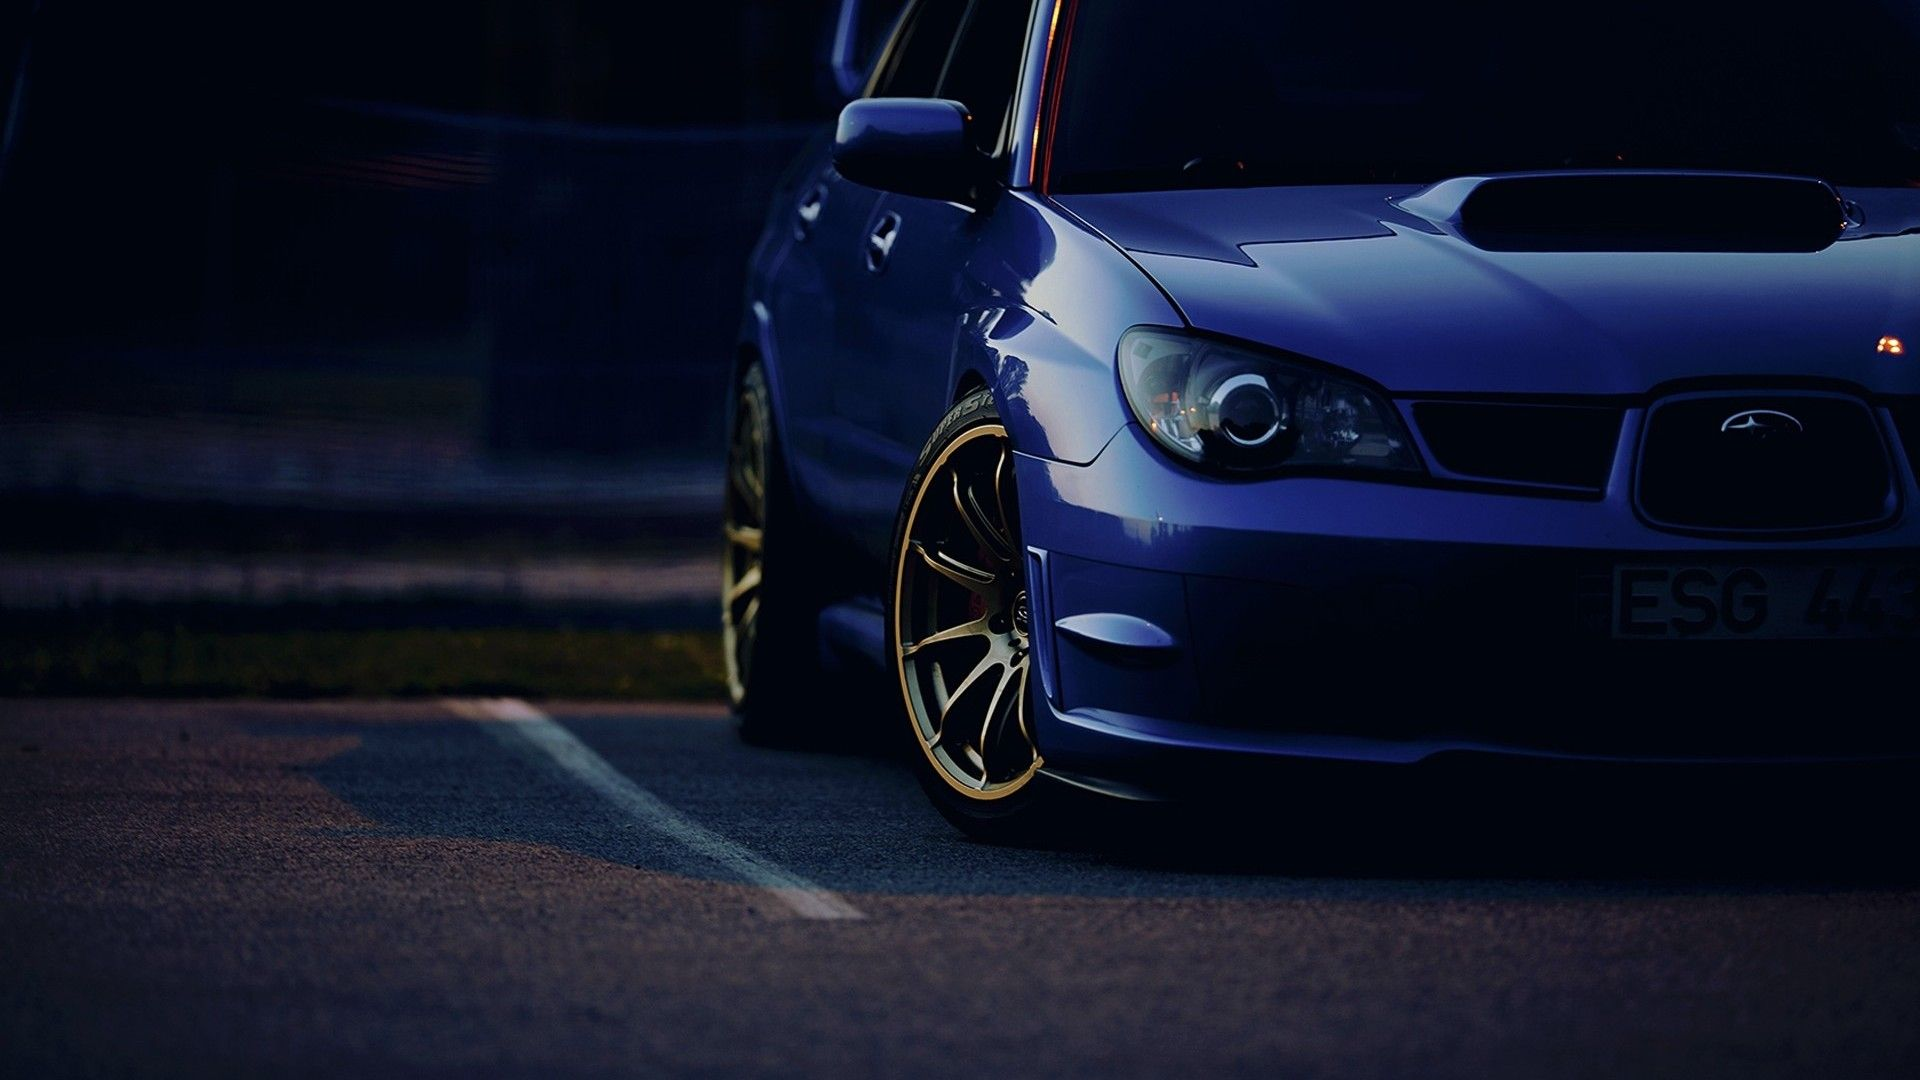 Subaru Wallpaper